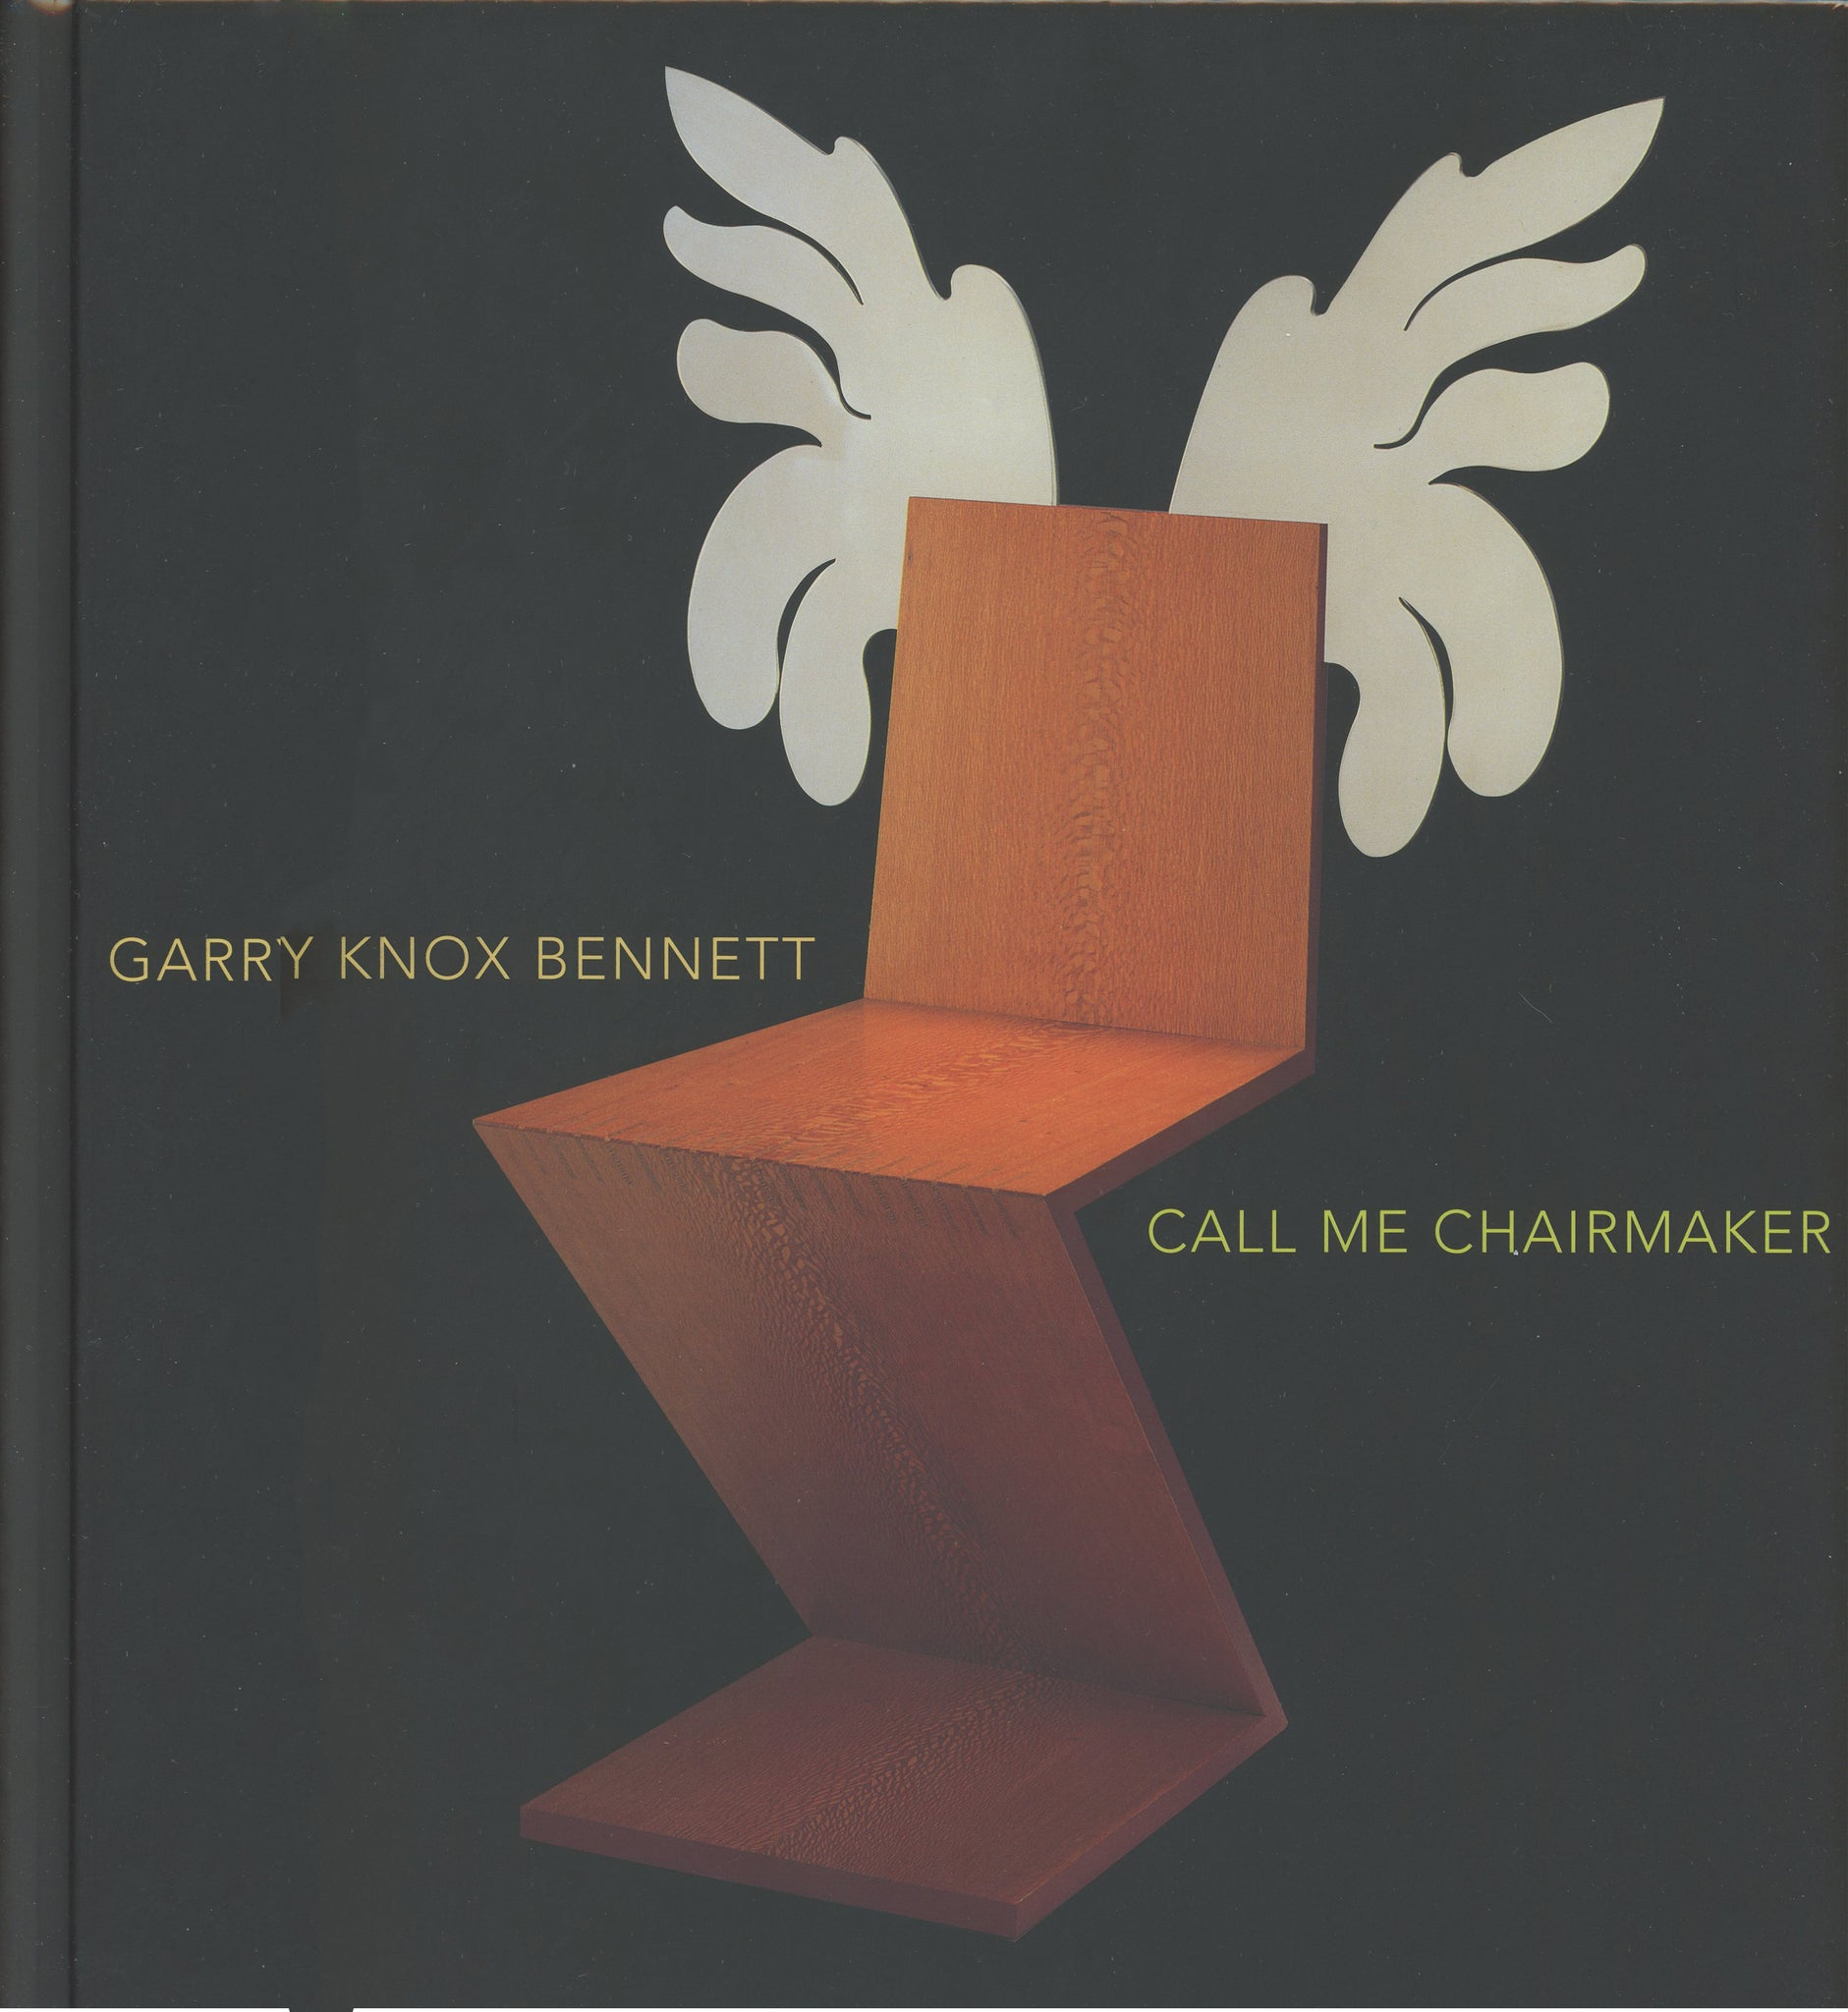 Garry Knox Bennett: Call Me Chairmaker